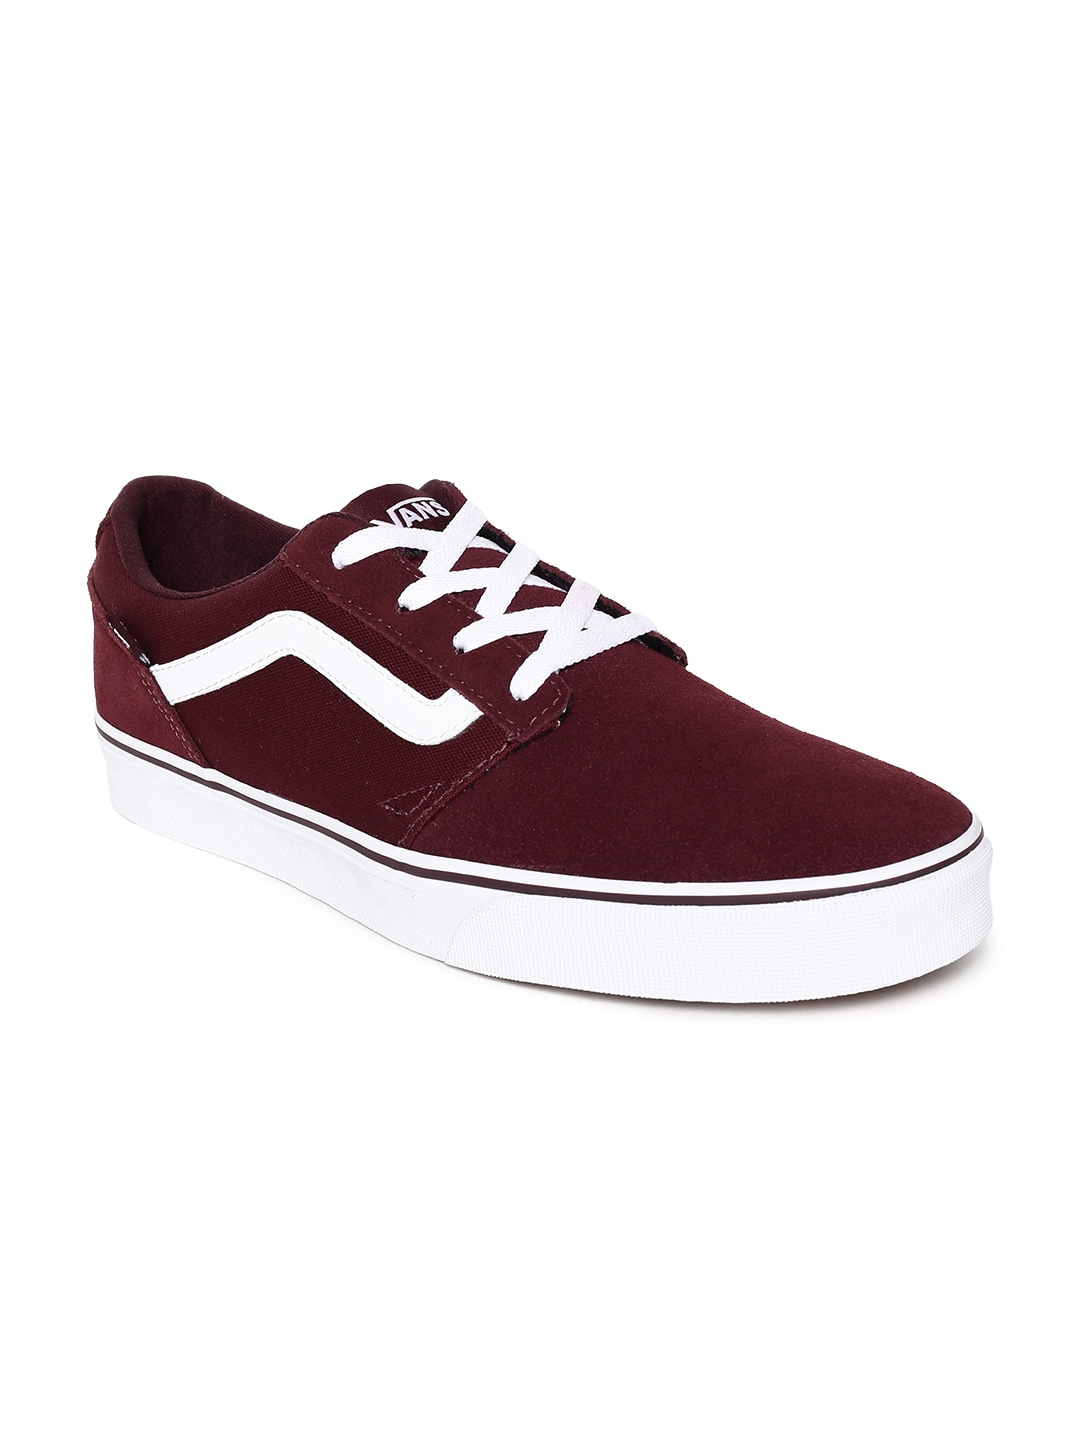 cecf3d4c50 Vans Maroon Shoes - Buy Vans Maroon Shoes online in India